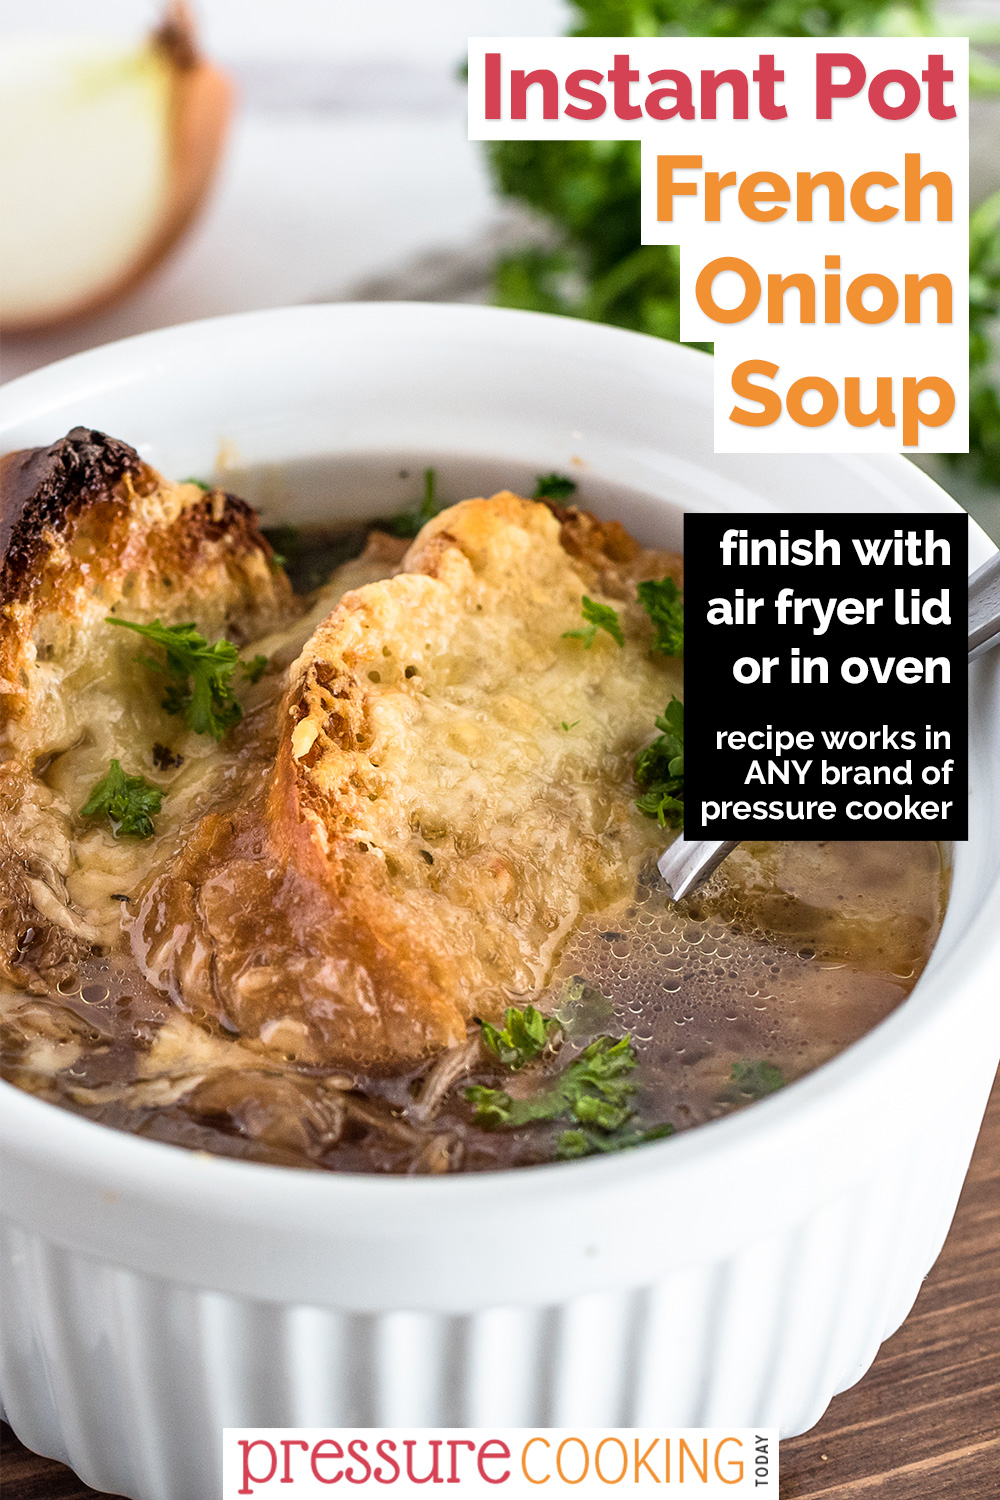 """Pinterest Image that reads """"Instant Pot French Onion Soup: Finish with air fryer lid or in oven"""" in a right-aligned black text box overlaid on a close-up vertical image of French Onion Soup with crusty browned baguettes and melted cheese in a white ramekin via @PressureCook2da"""